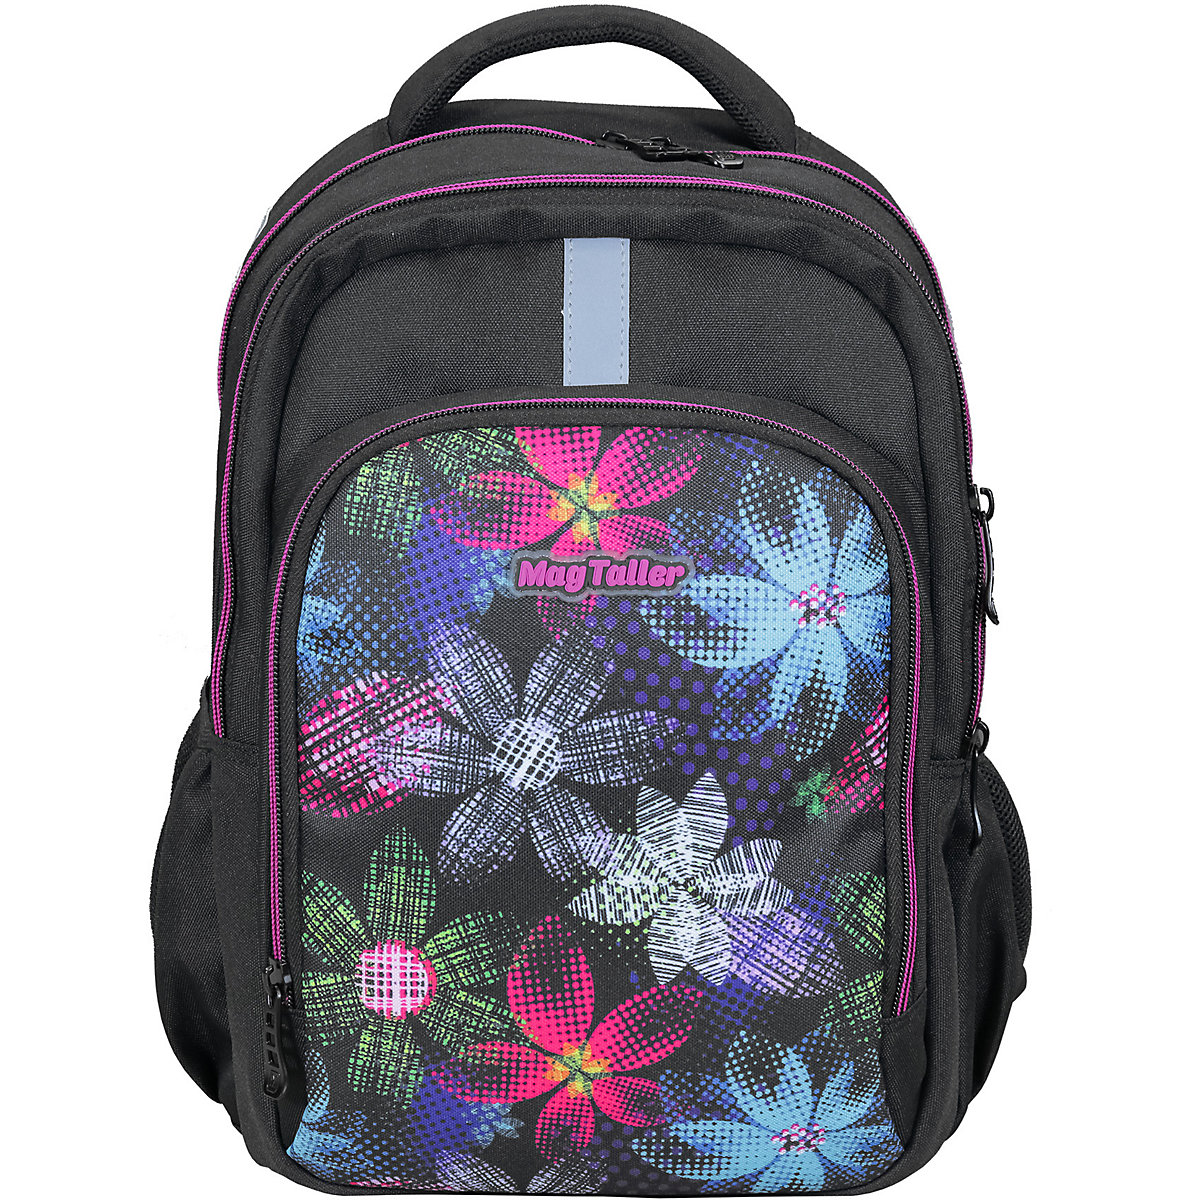 School Bags MAGTALLER 11154976 schoolbag backpack knapsacks orthopedic bag for boy and girl animals flower sprints school bags magtaller 11154976 schoolbag backpack knapsacks orthopedic bag for boy and girl animals flower sprints